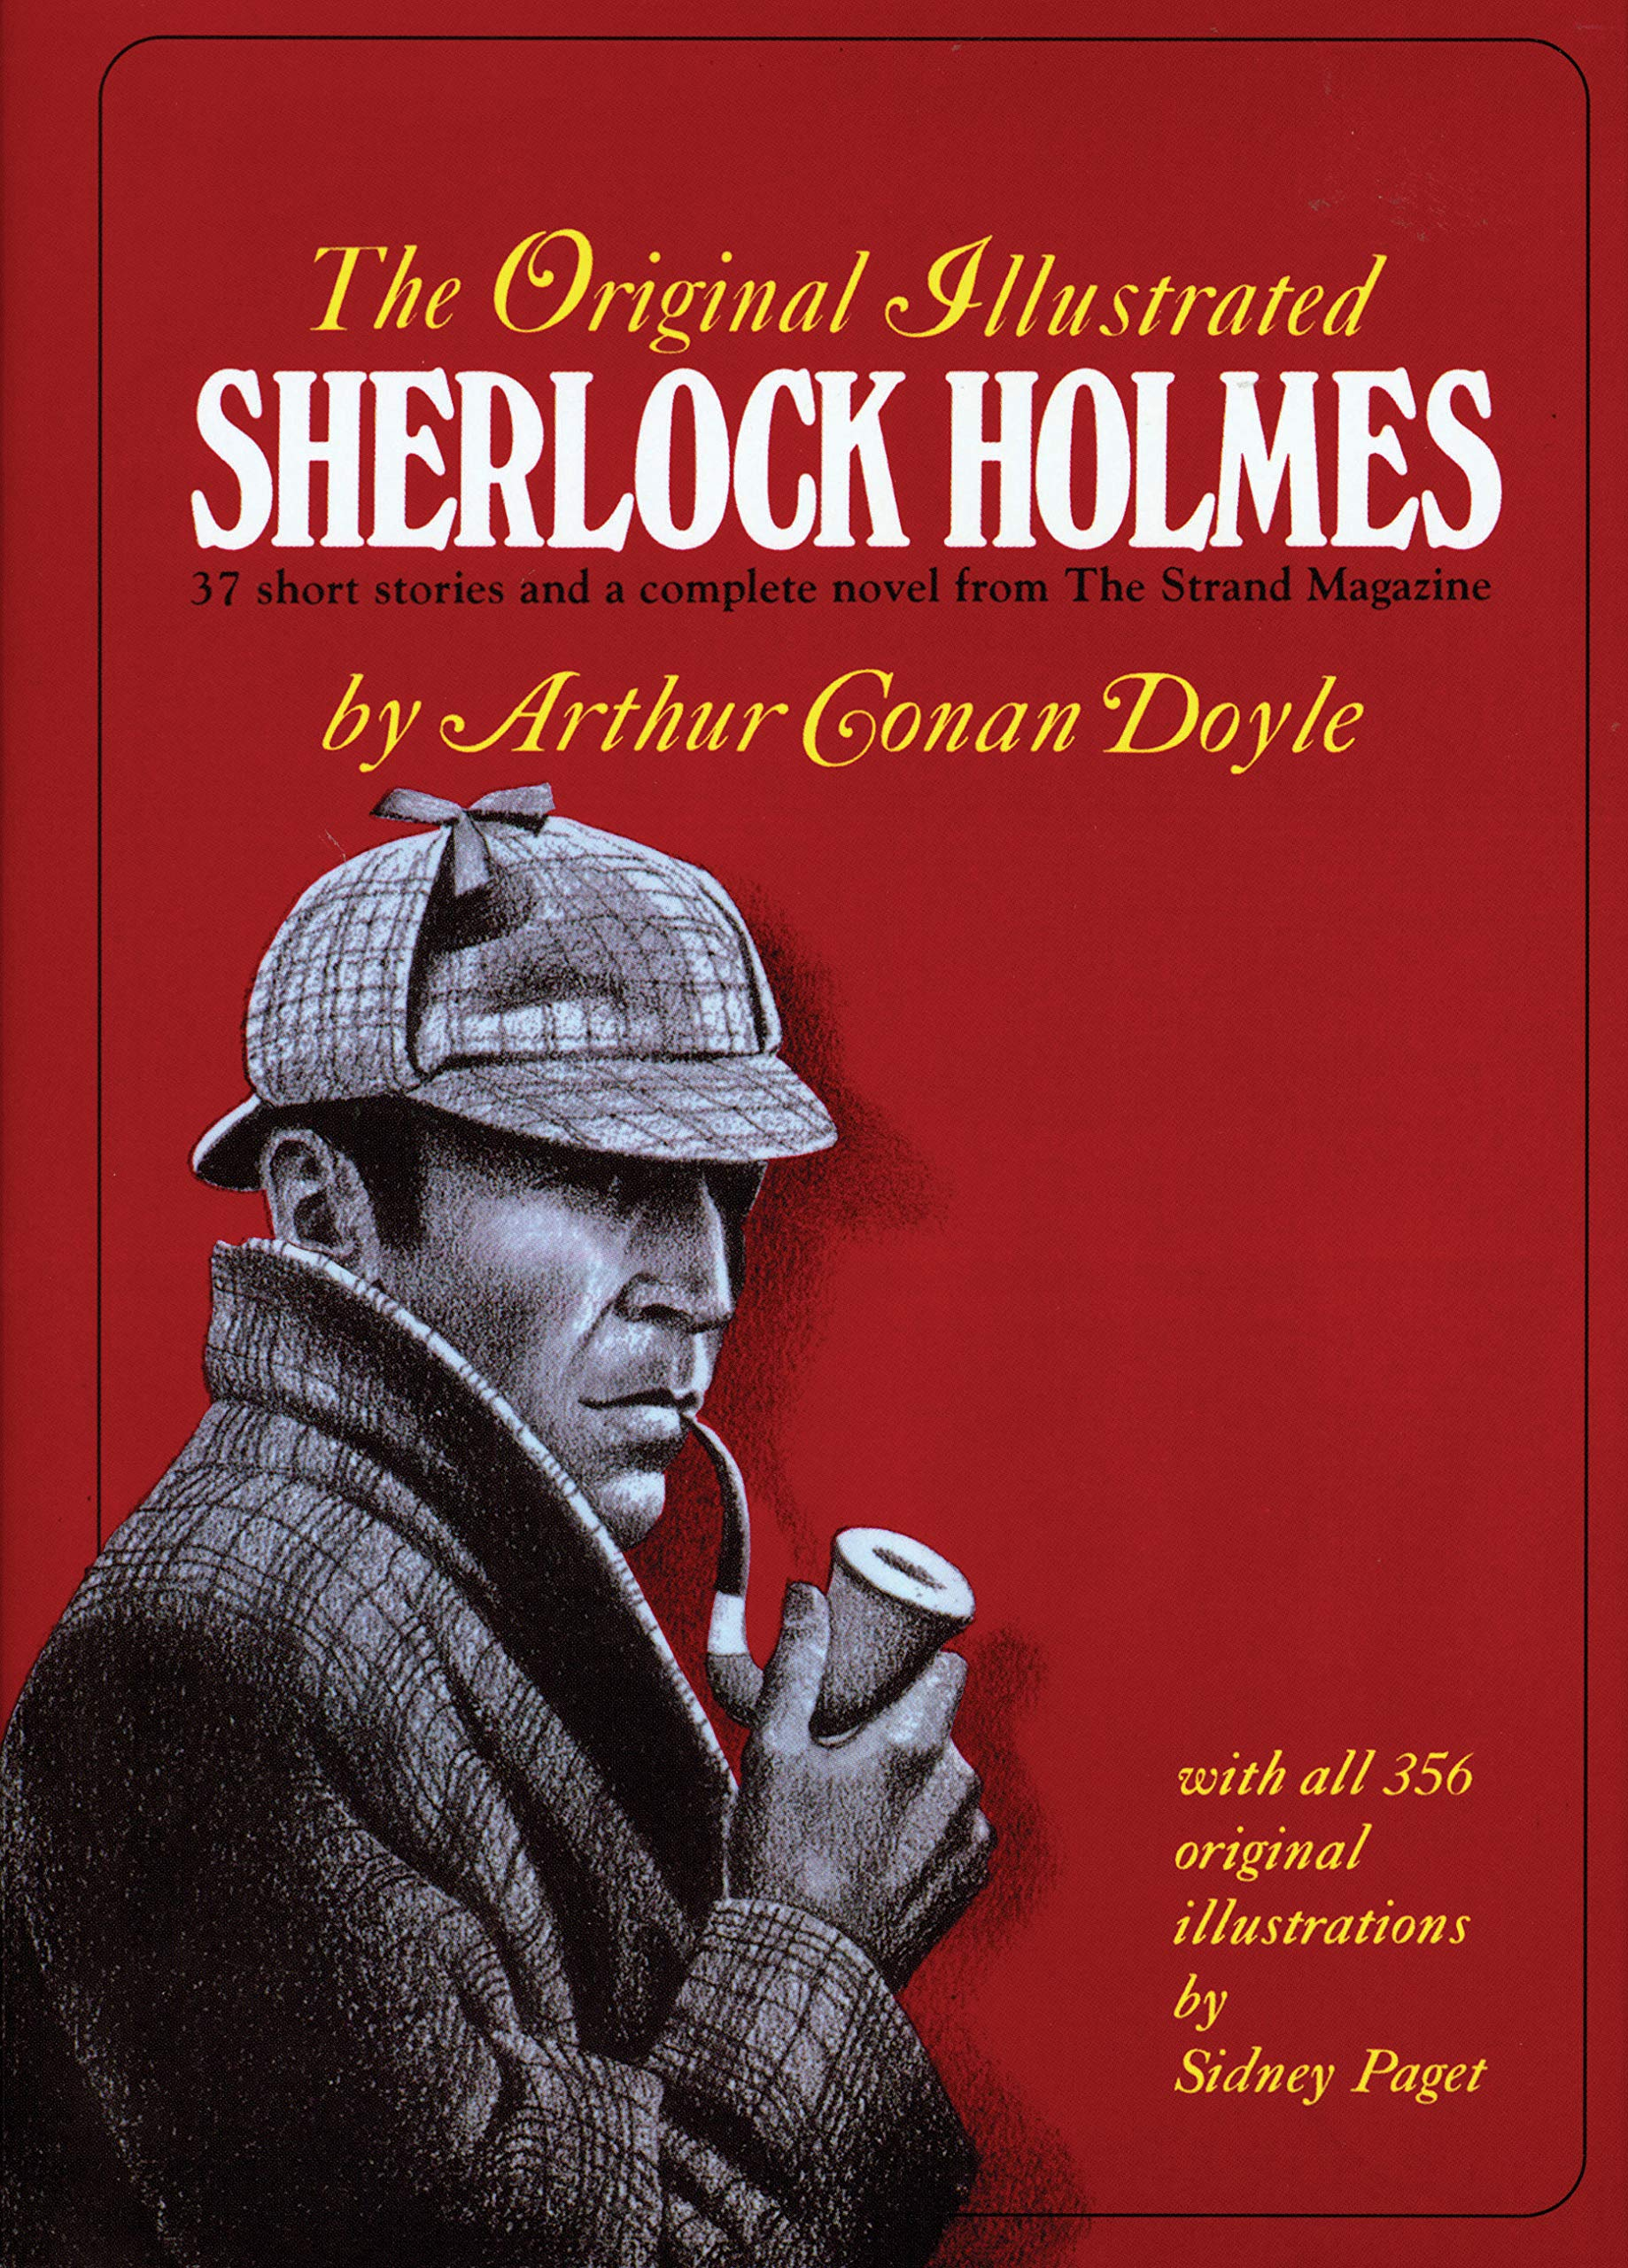 The Original Illustrated Sherlock Holmes: Arthur Conan Doyle, Sidney